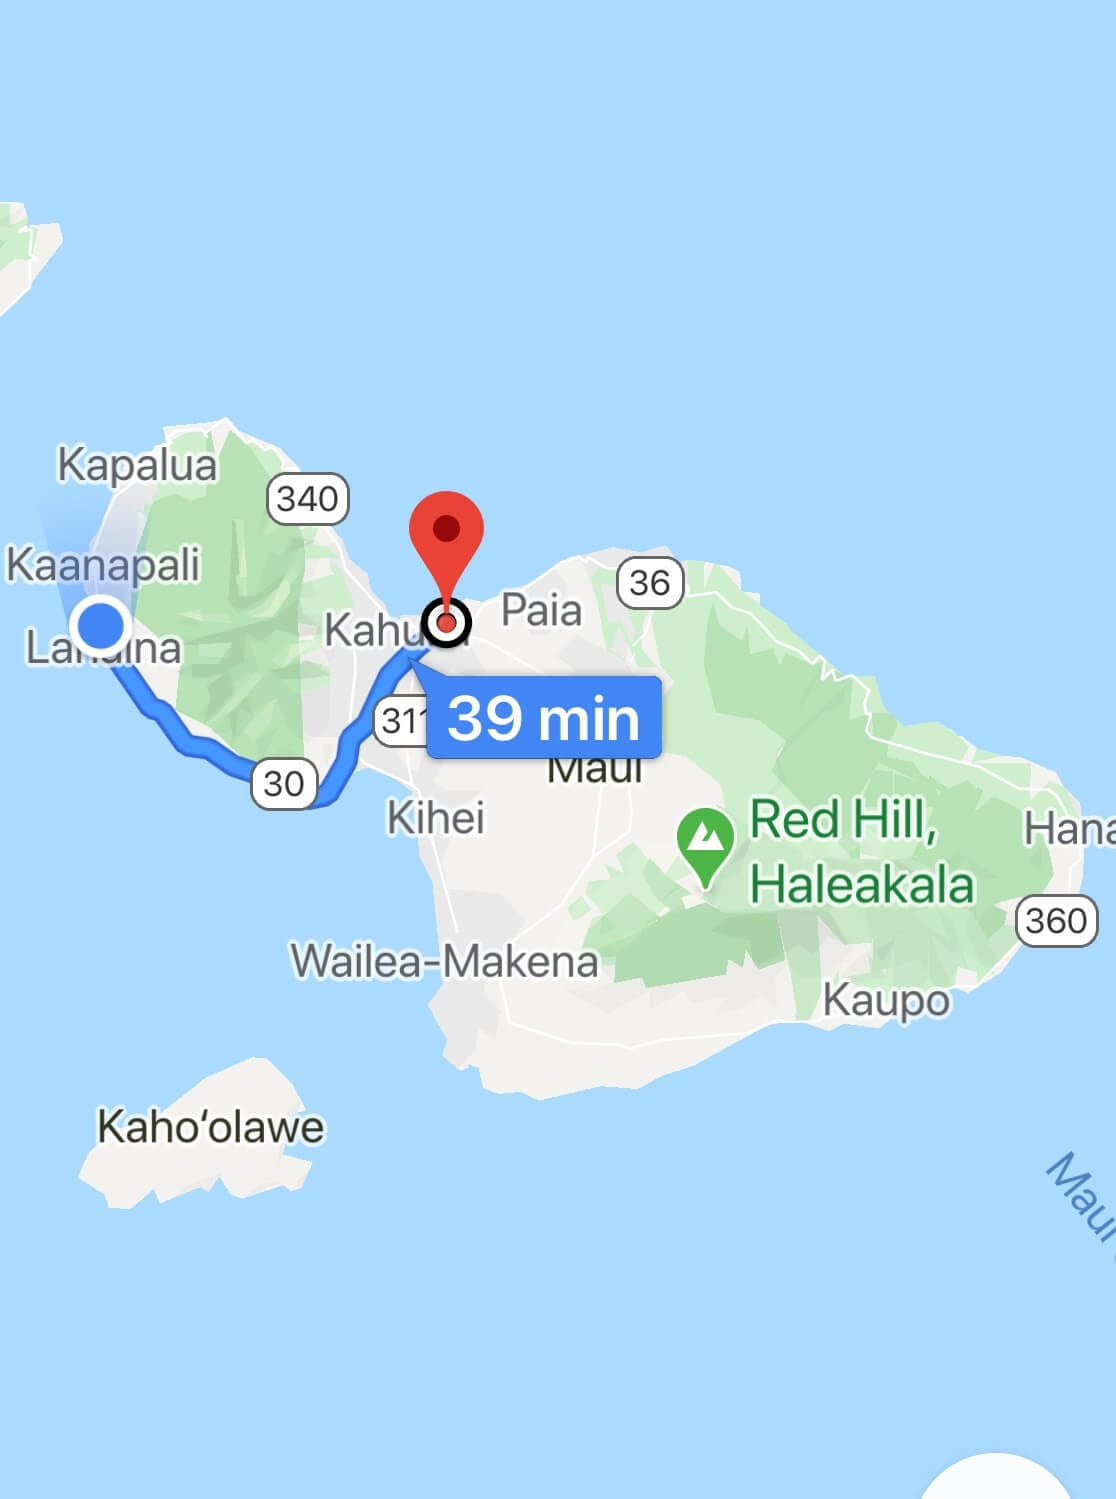 Map of Maui and directions from the airport to Lahaina